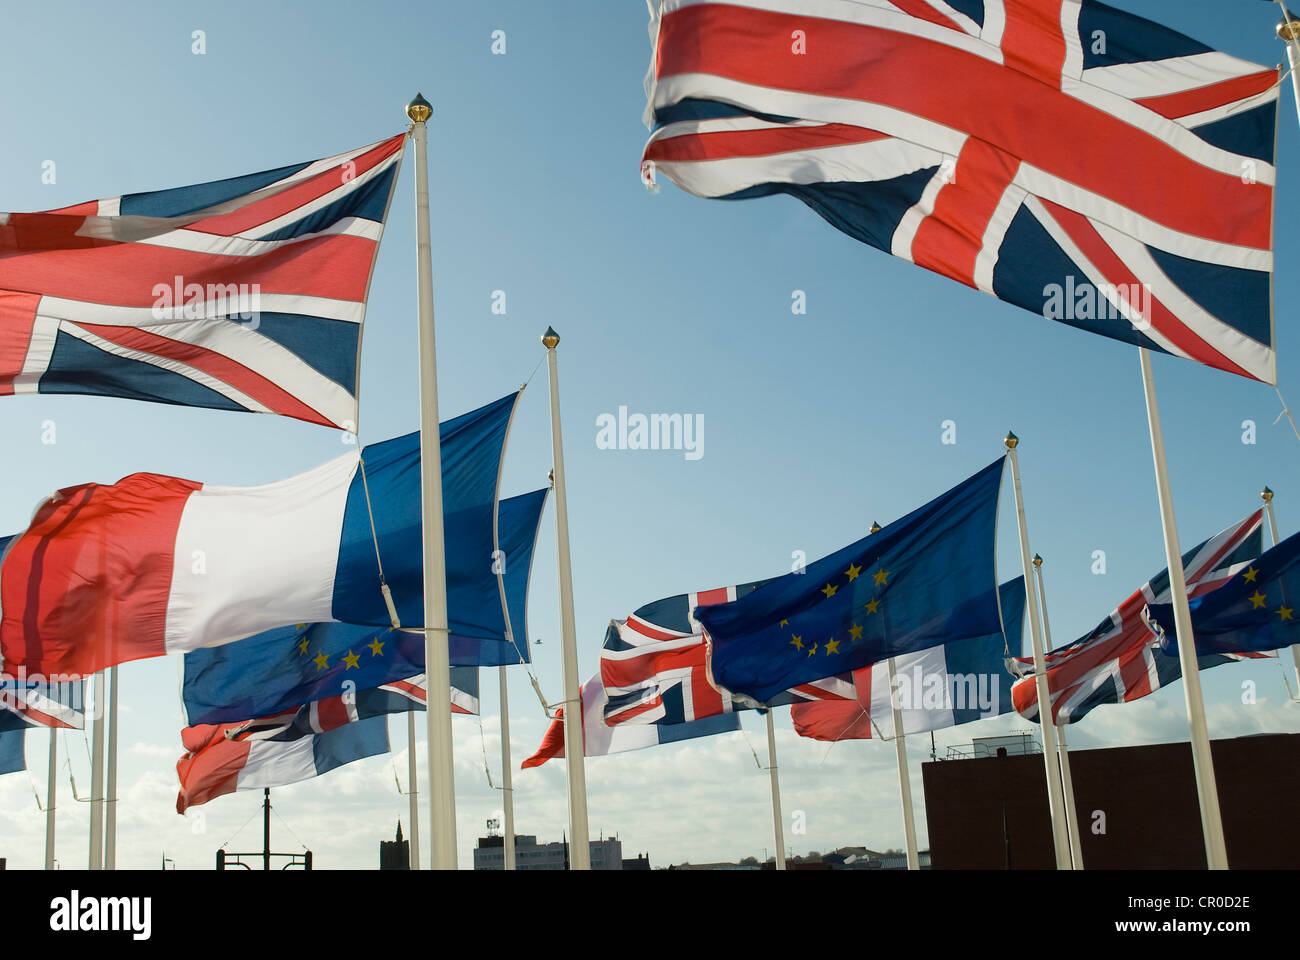 Union Jack and European Union flags flying on numerous flag poles Stock Photo